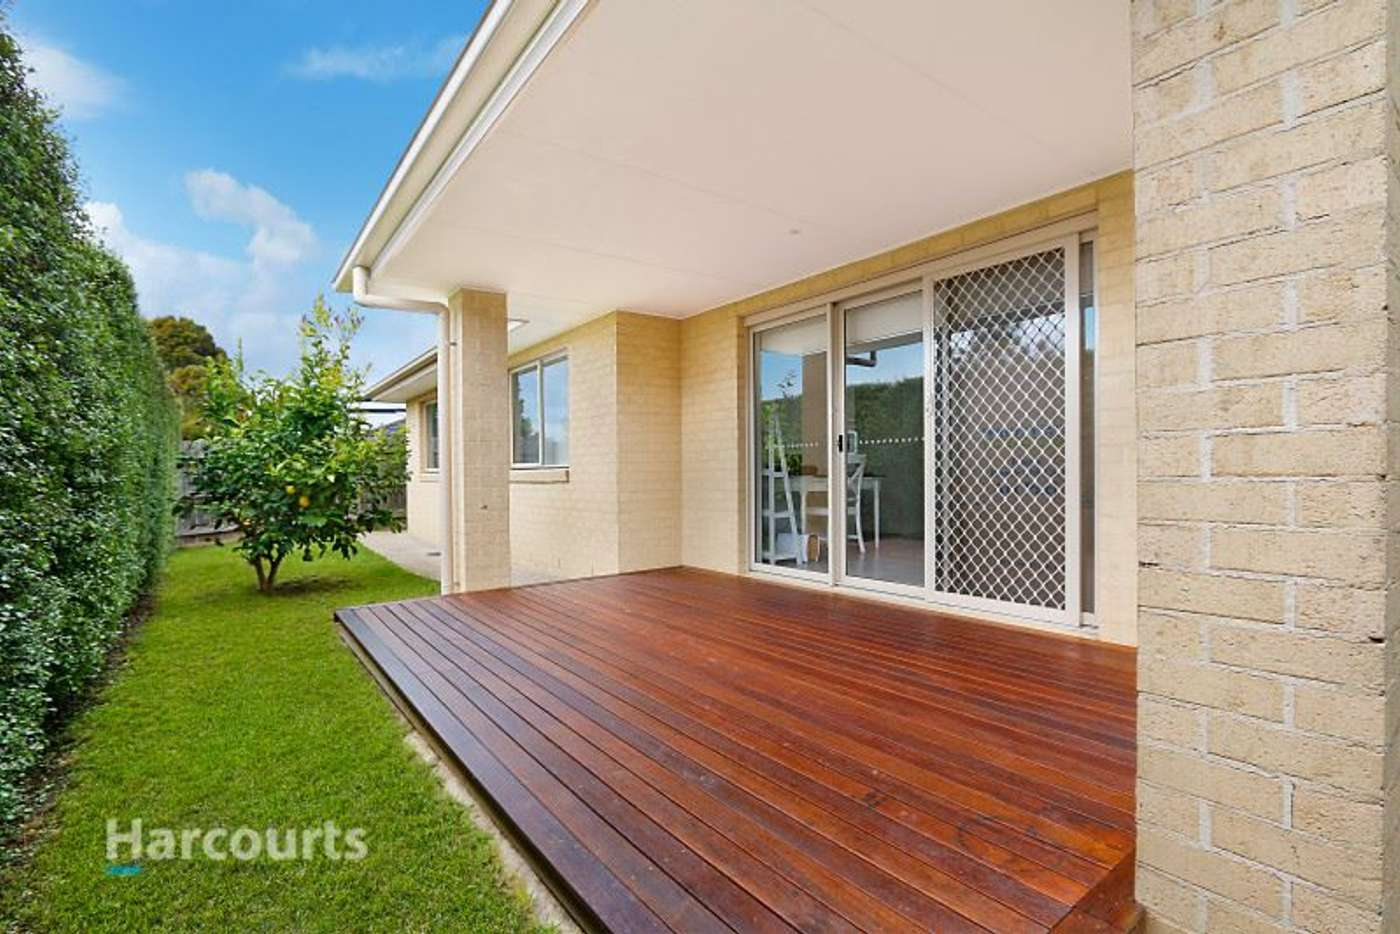 Sixth view of Homely house listing, 2/11 Olivia Way, Hastings VIC 3915